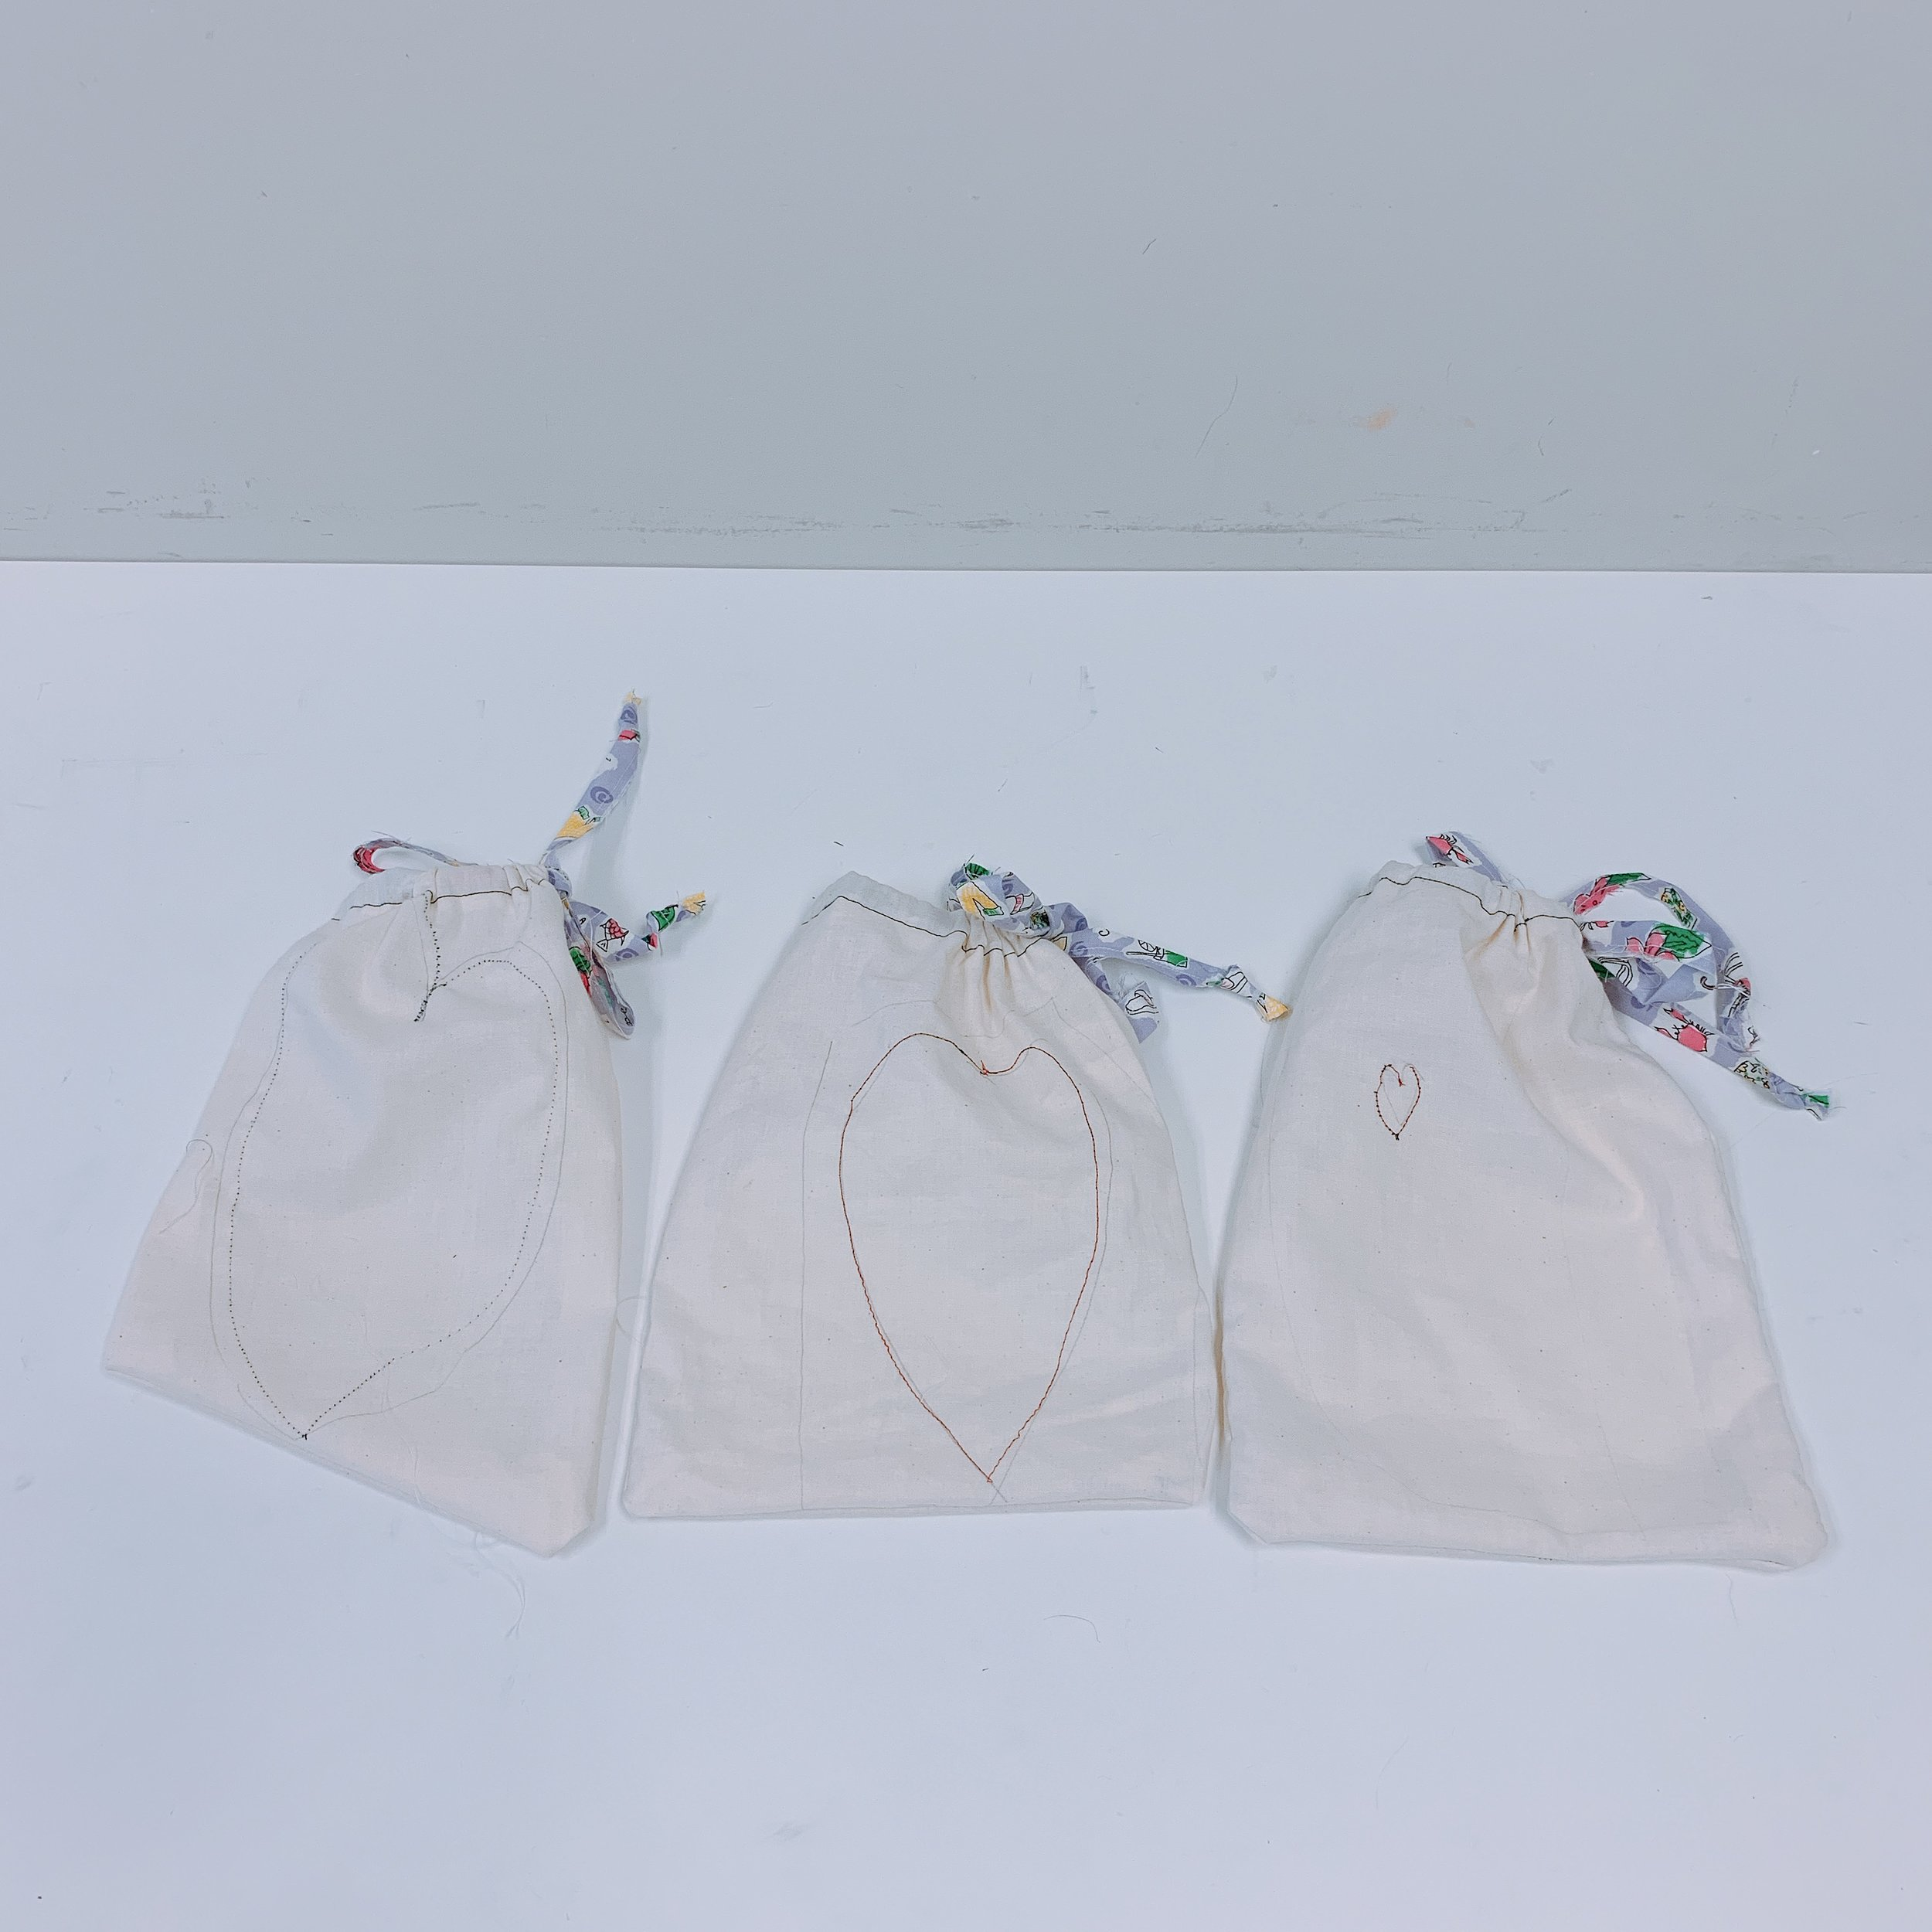 Sewn Pouches, Embroidered Hearts, & Fashion Design - Week 2 June 10-14